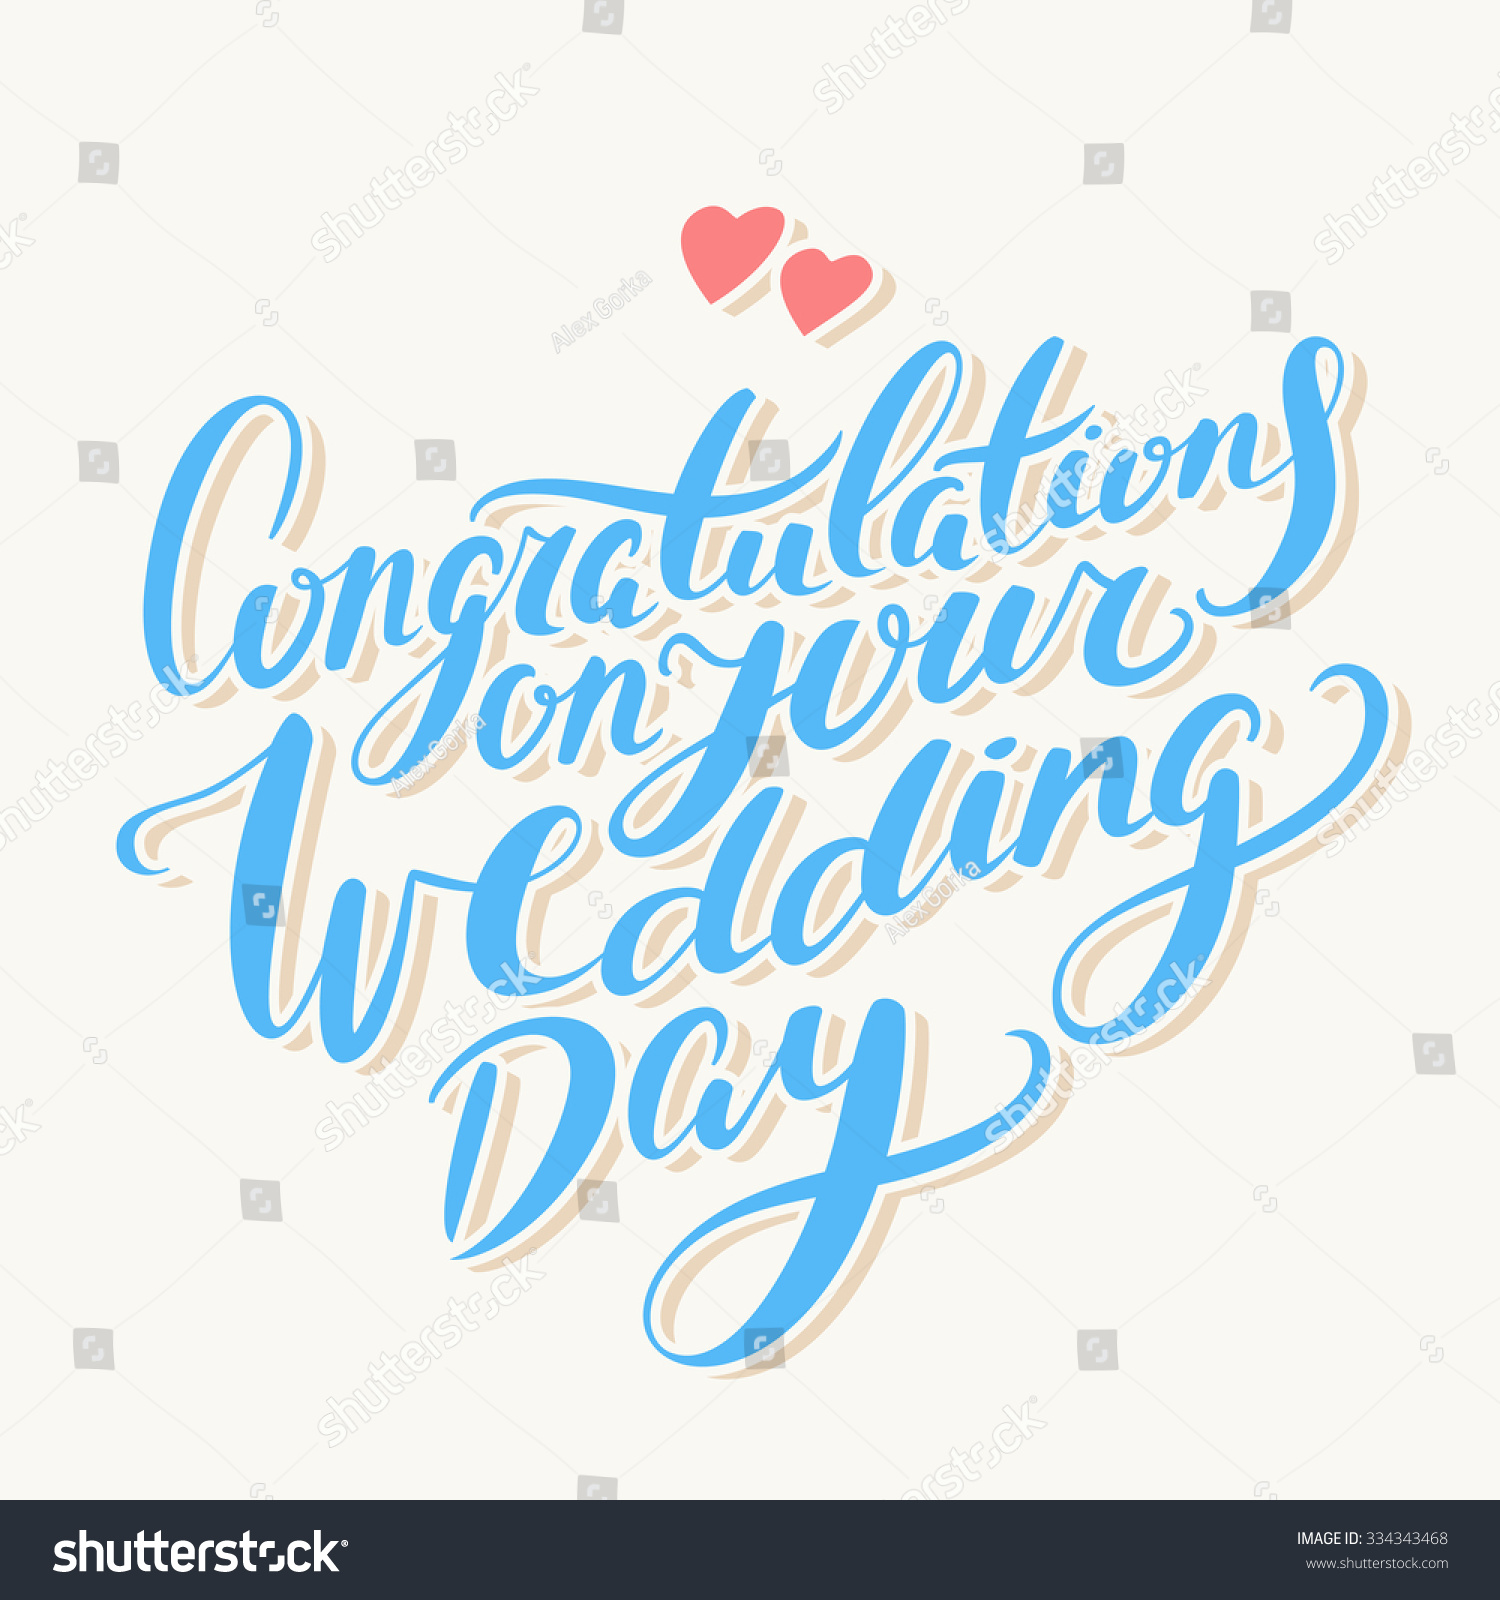 Congratulations On Your Wedding Day Greeting Card Stock